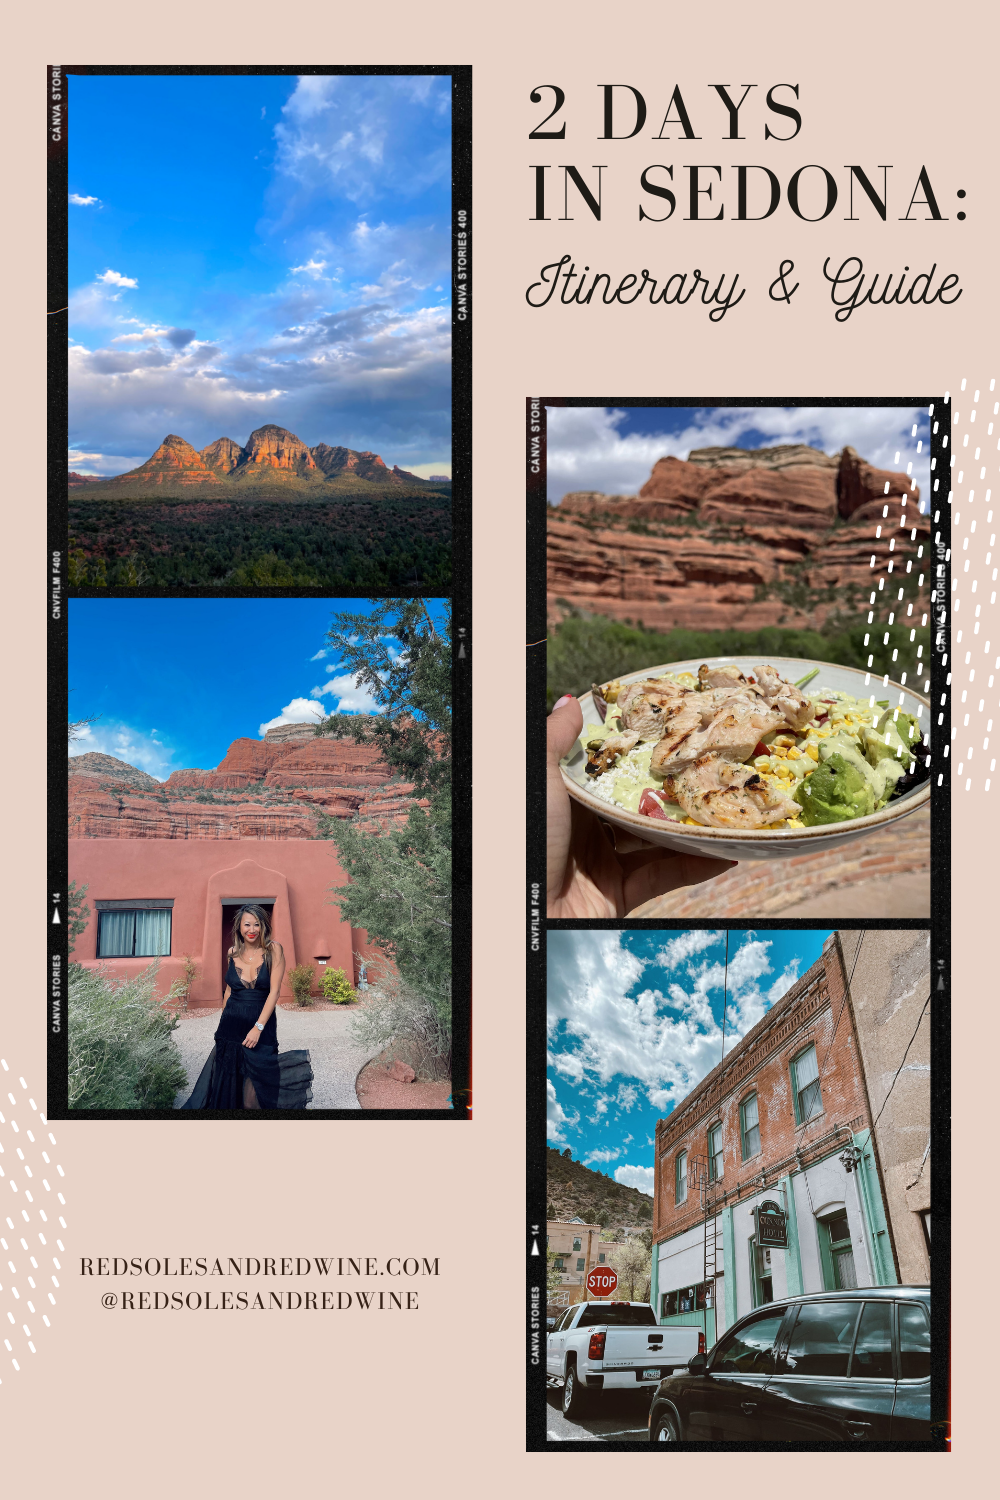 2 days in Sedona Itinerary and Guide, Sedona weekend trip, Sedona travel guide, Sedona travel itinerary, Sedona Arizona travel guide, Sedona Arizona trip, where to stay for a long weekend in Sedona, what to do for a weekend in Sedona Arizona, travel blogger, travel diary, travel photography, travel journal, Red Soles and Red Wine, Jennifer Worman